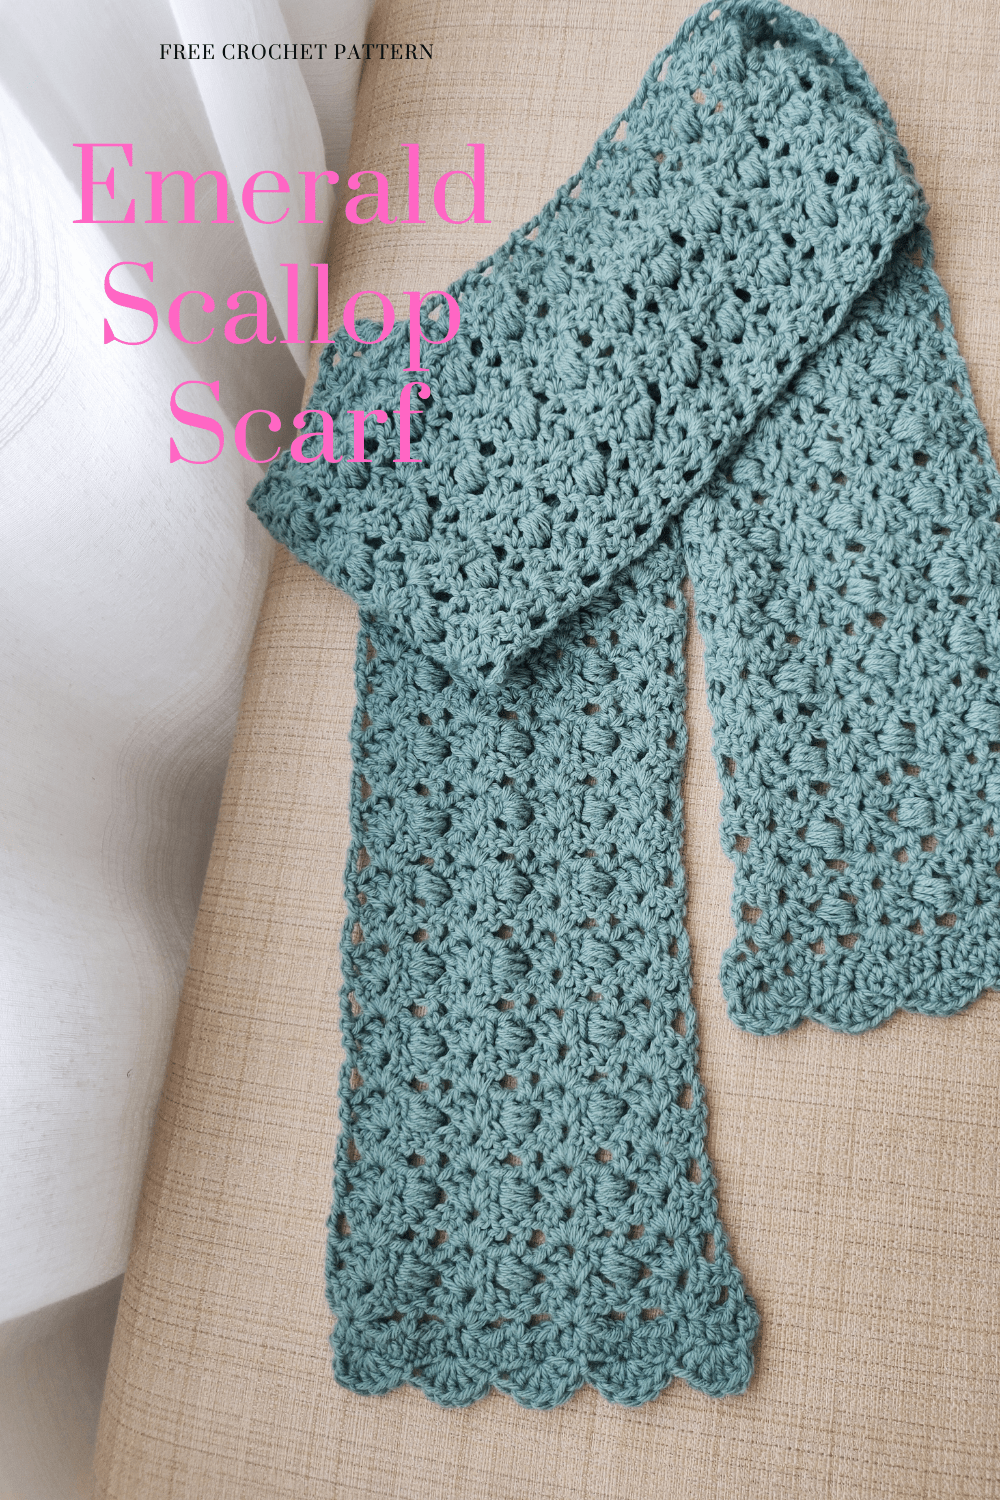 Emerald crochet scarf on a bench